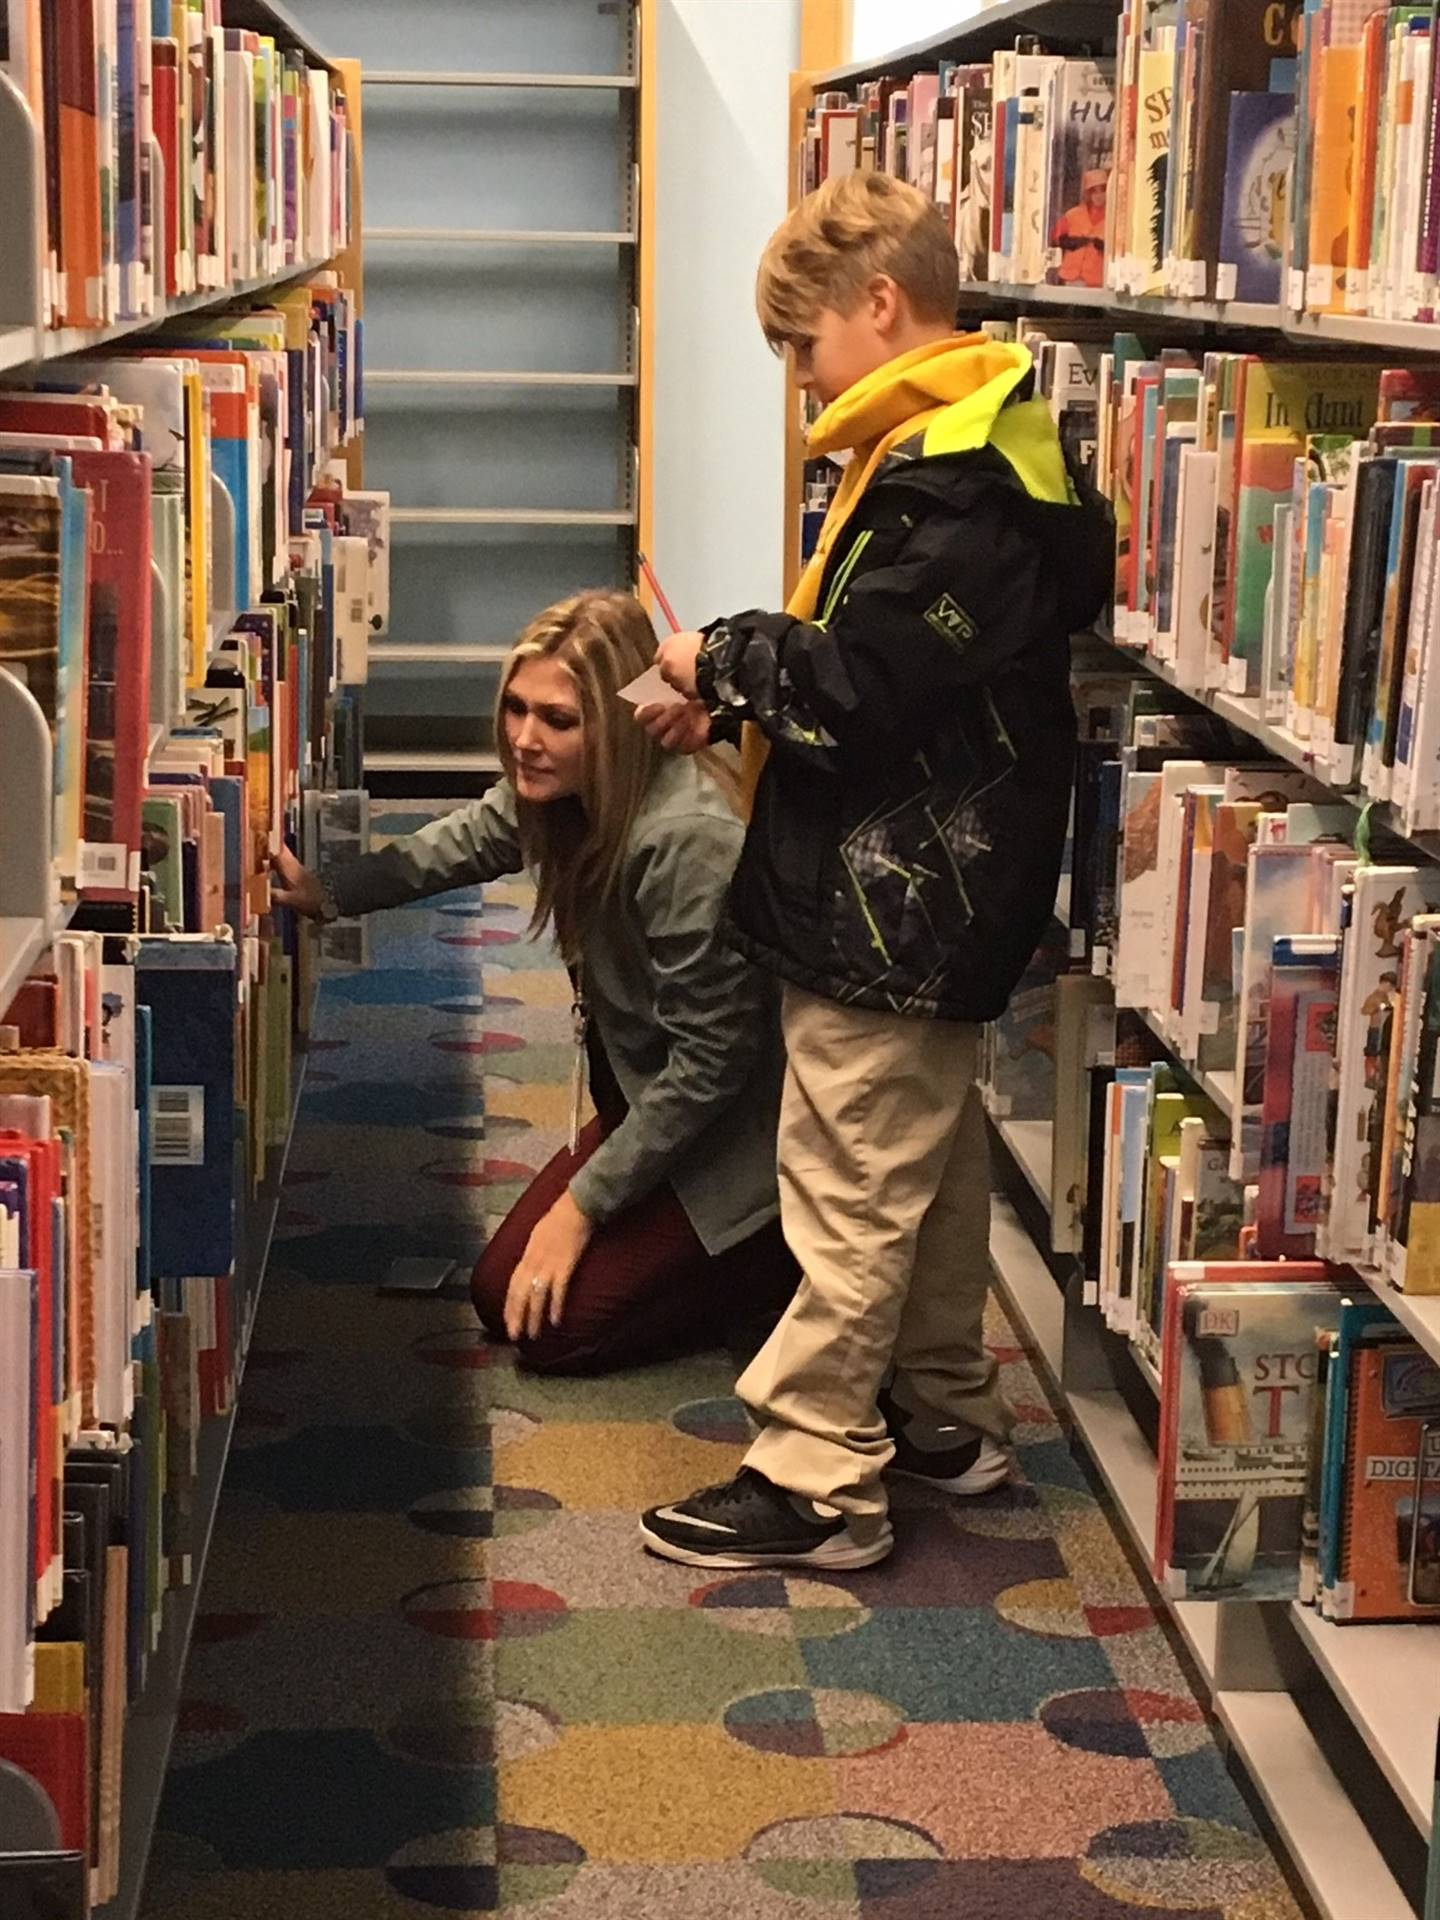 Student and teacher in a library